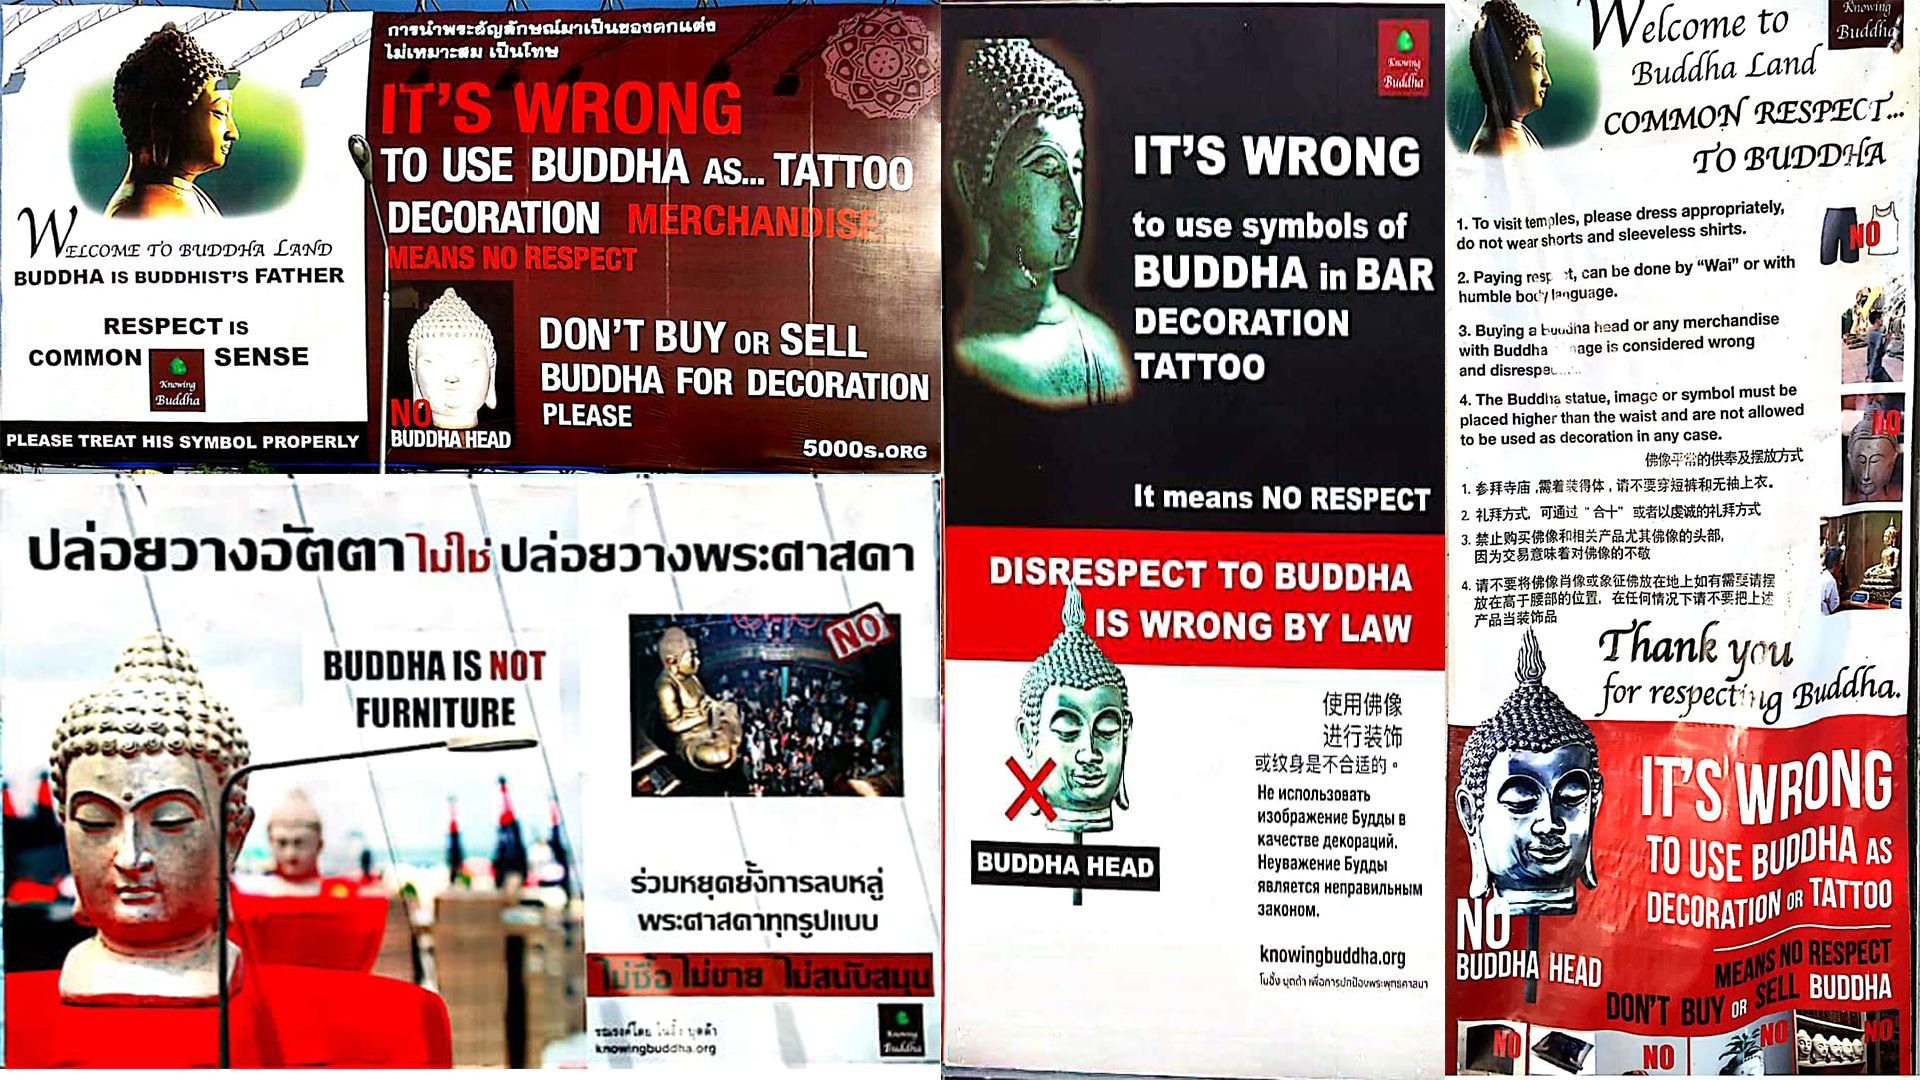 Thai-buddha-no-tattoo-signs